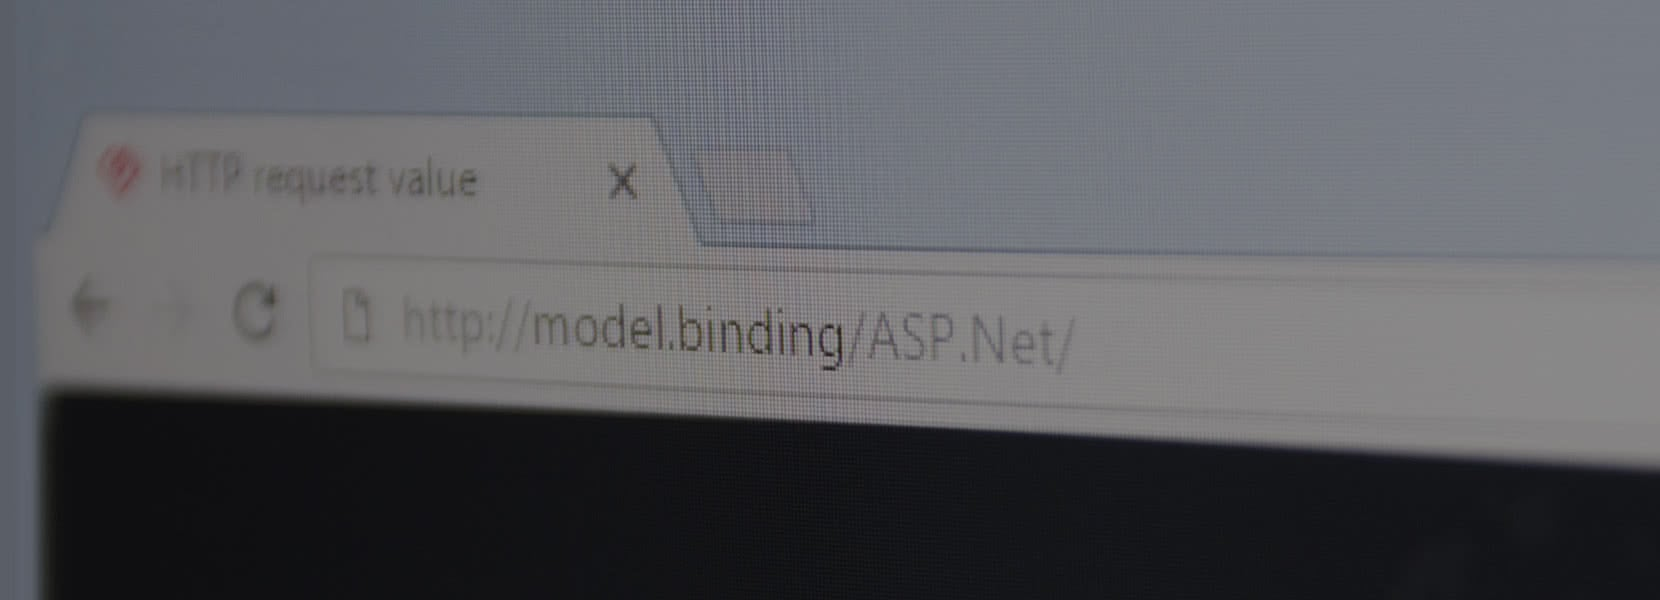 Model binding in ASP NET MVC | Mono Software